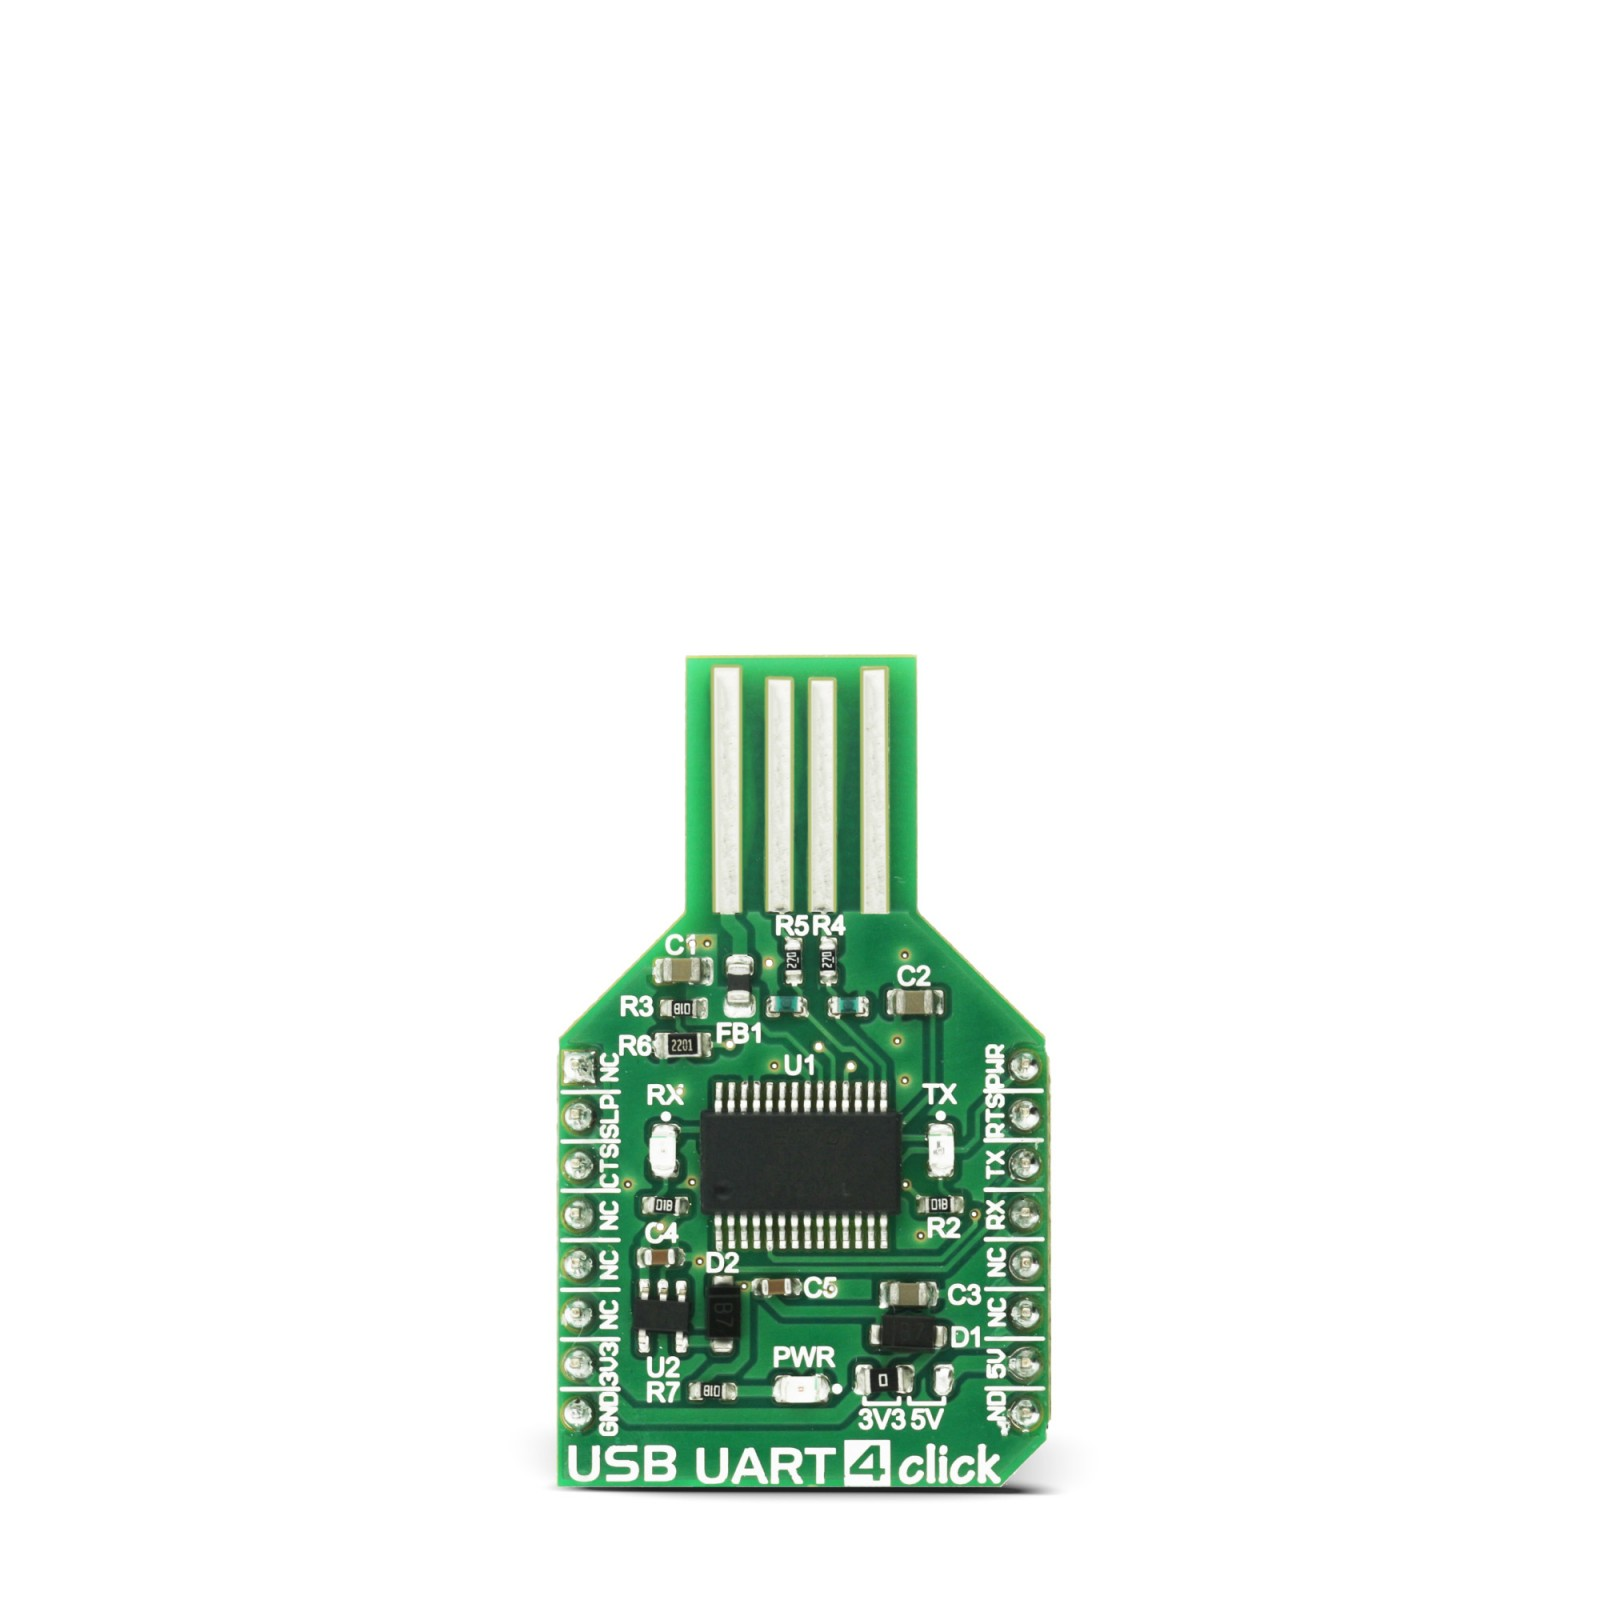 USB UART 4 click - USB-to-UART interface module